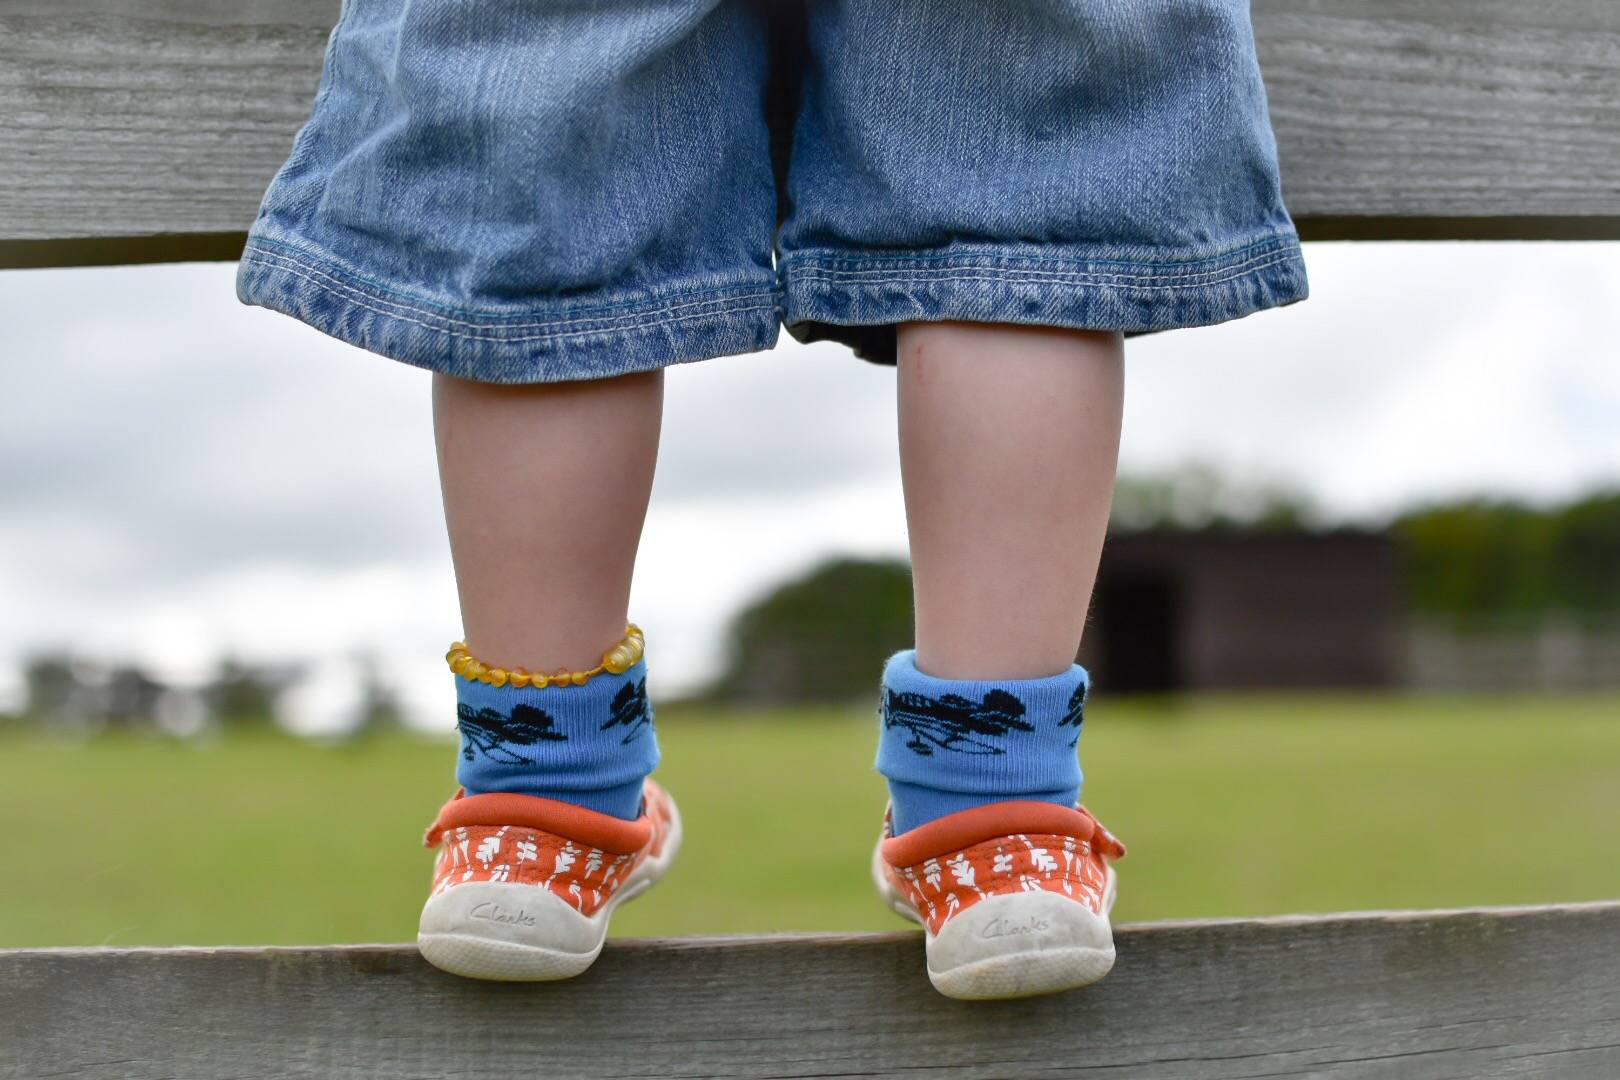 cute feet! don't you just love a pair of chubby legs on a toddler